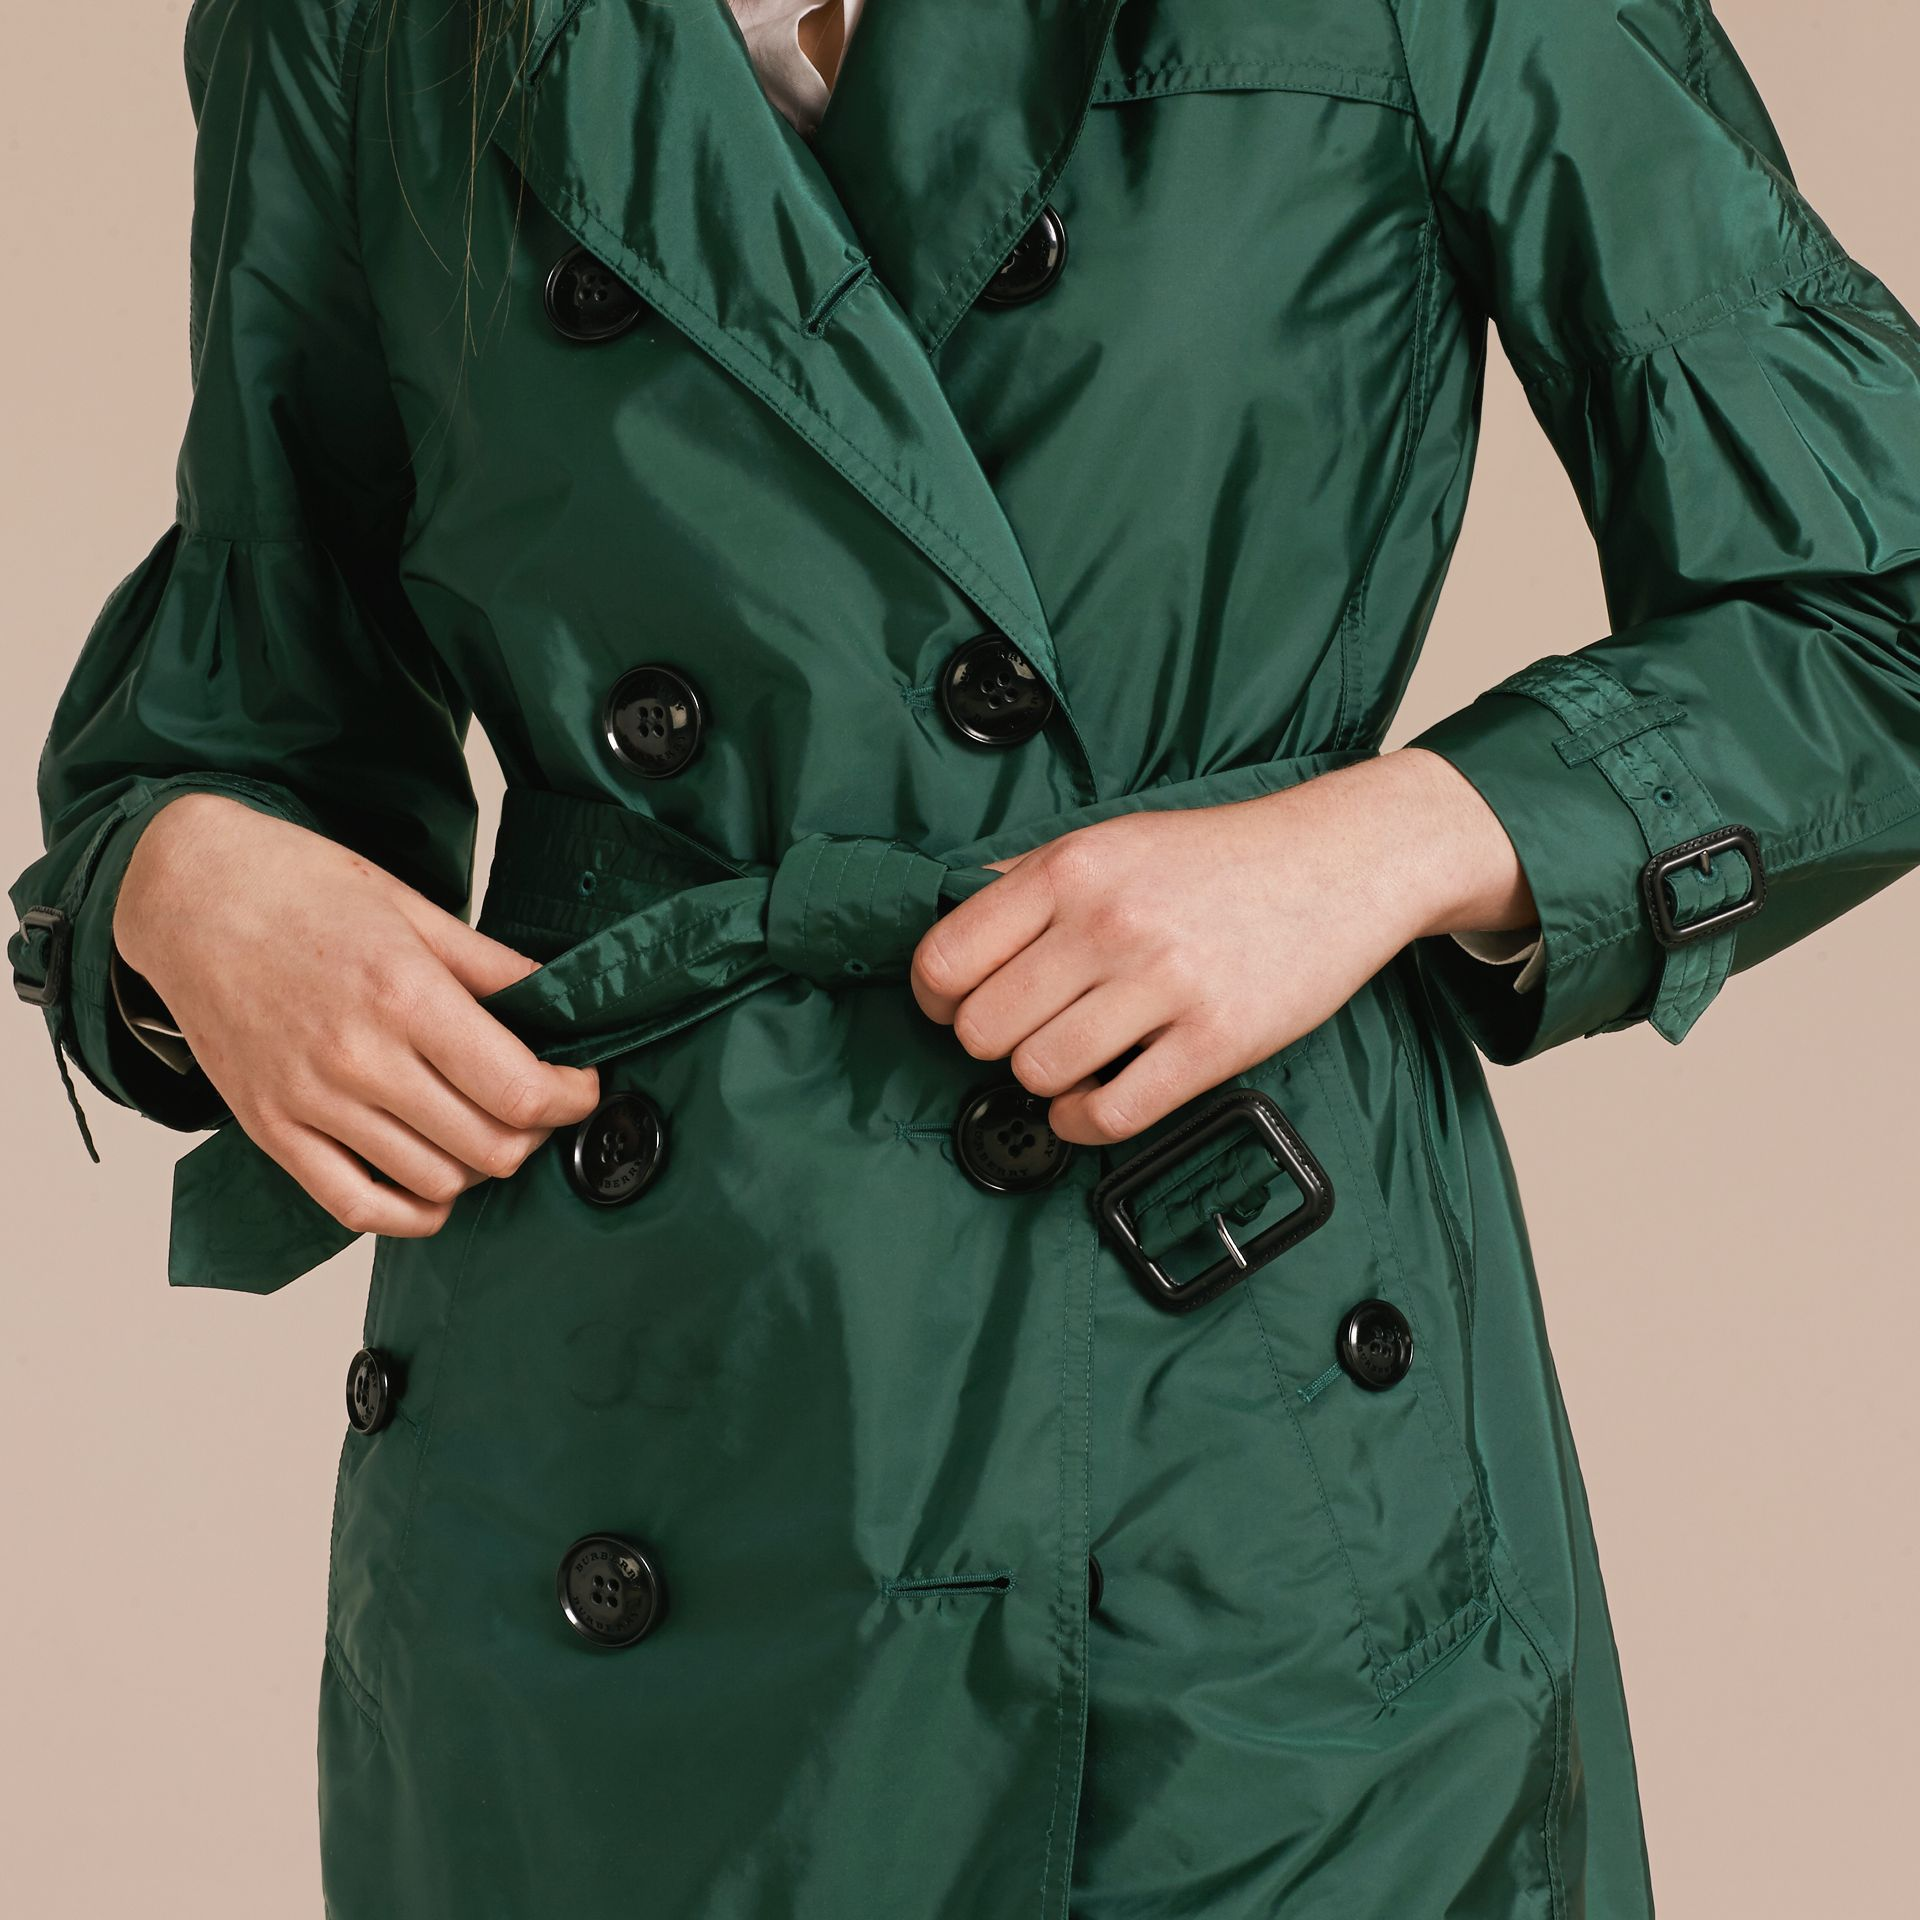 Vert bouteille intense Trench-coat repliable avec manches cloches Vert Bouteille Intense - photo de la galerie 5